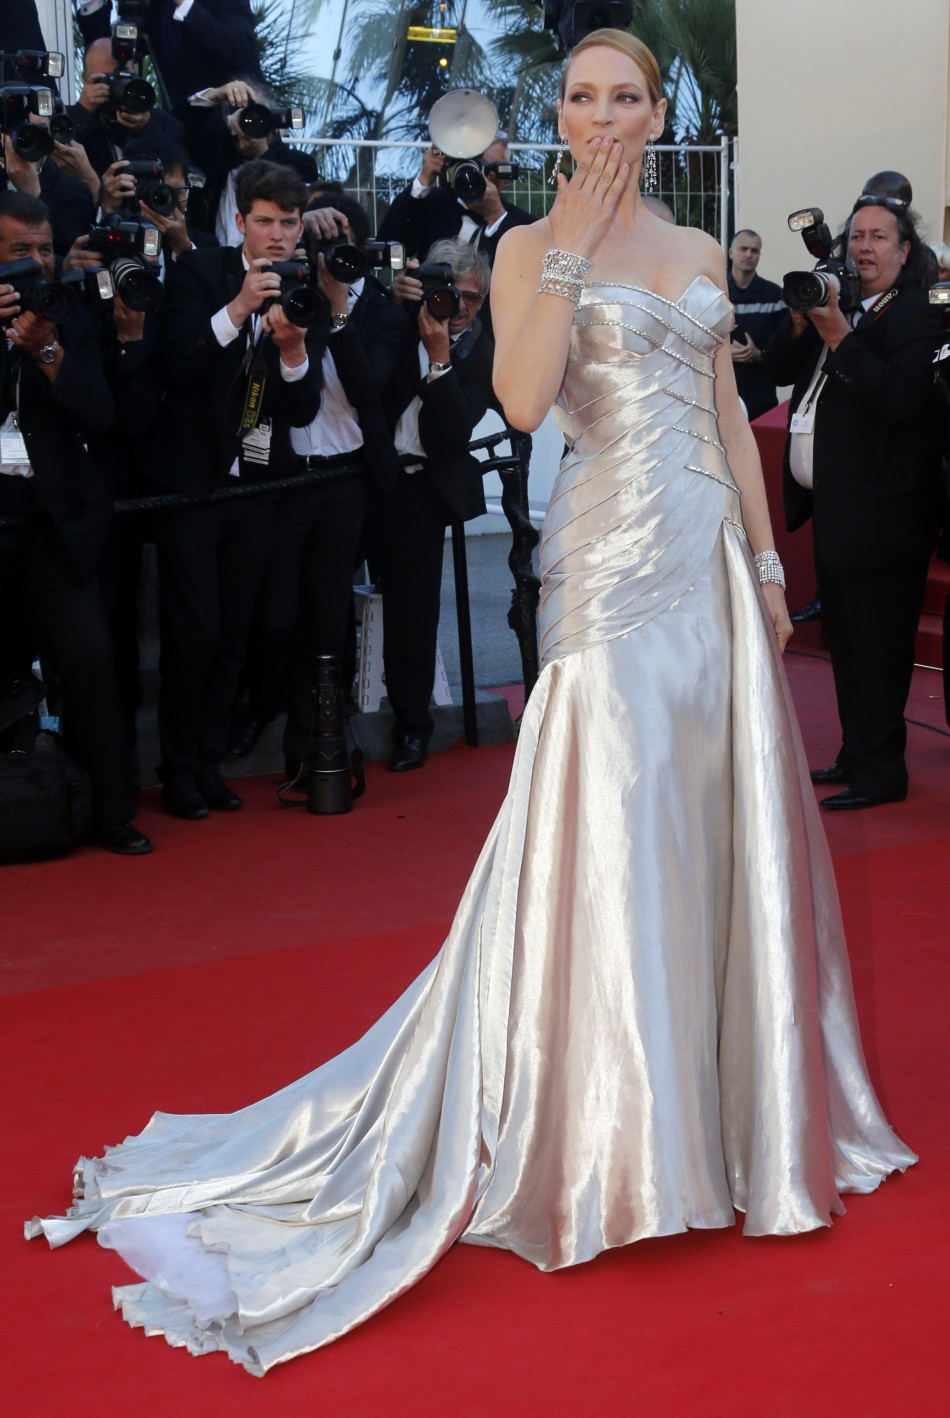 Actress Uma Thurman poses on the red carpet as she arrives at the closing ceremony of the 66th Cannes Film Festival in Cannes May 26, 2013.